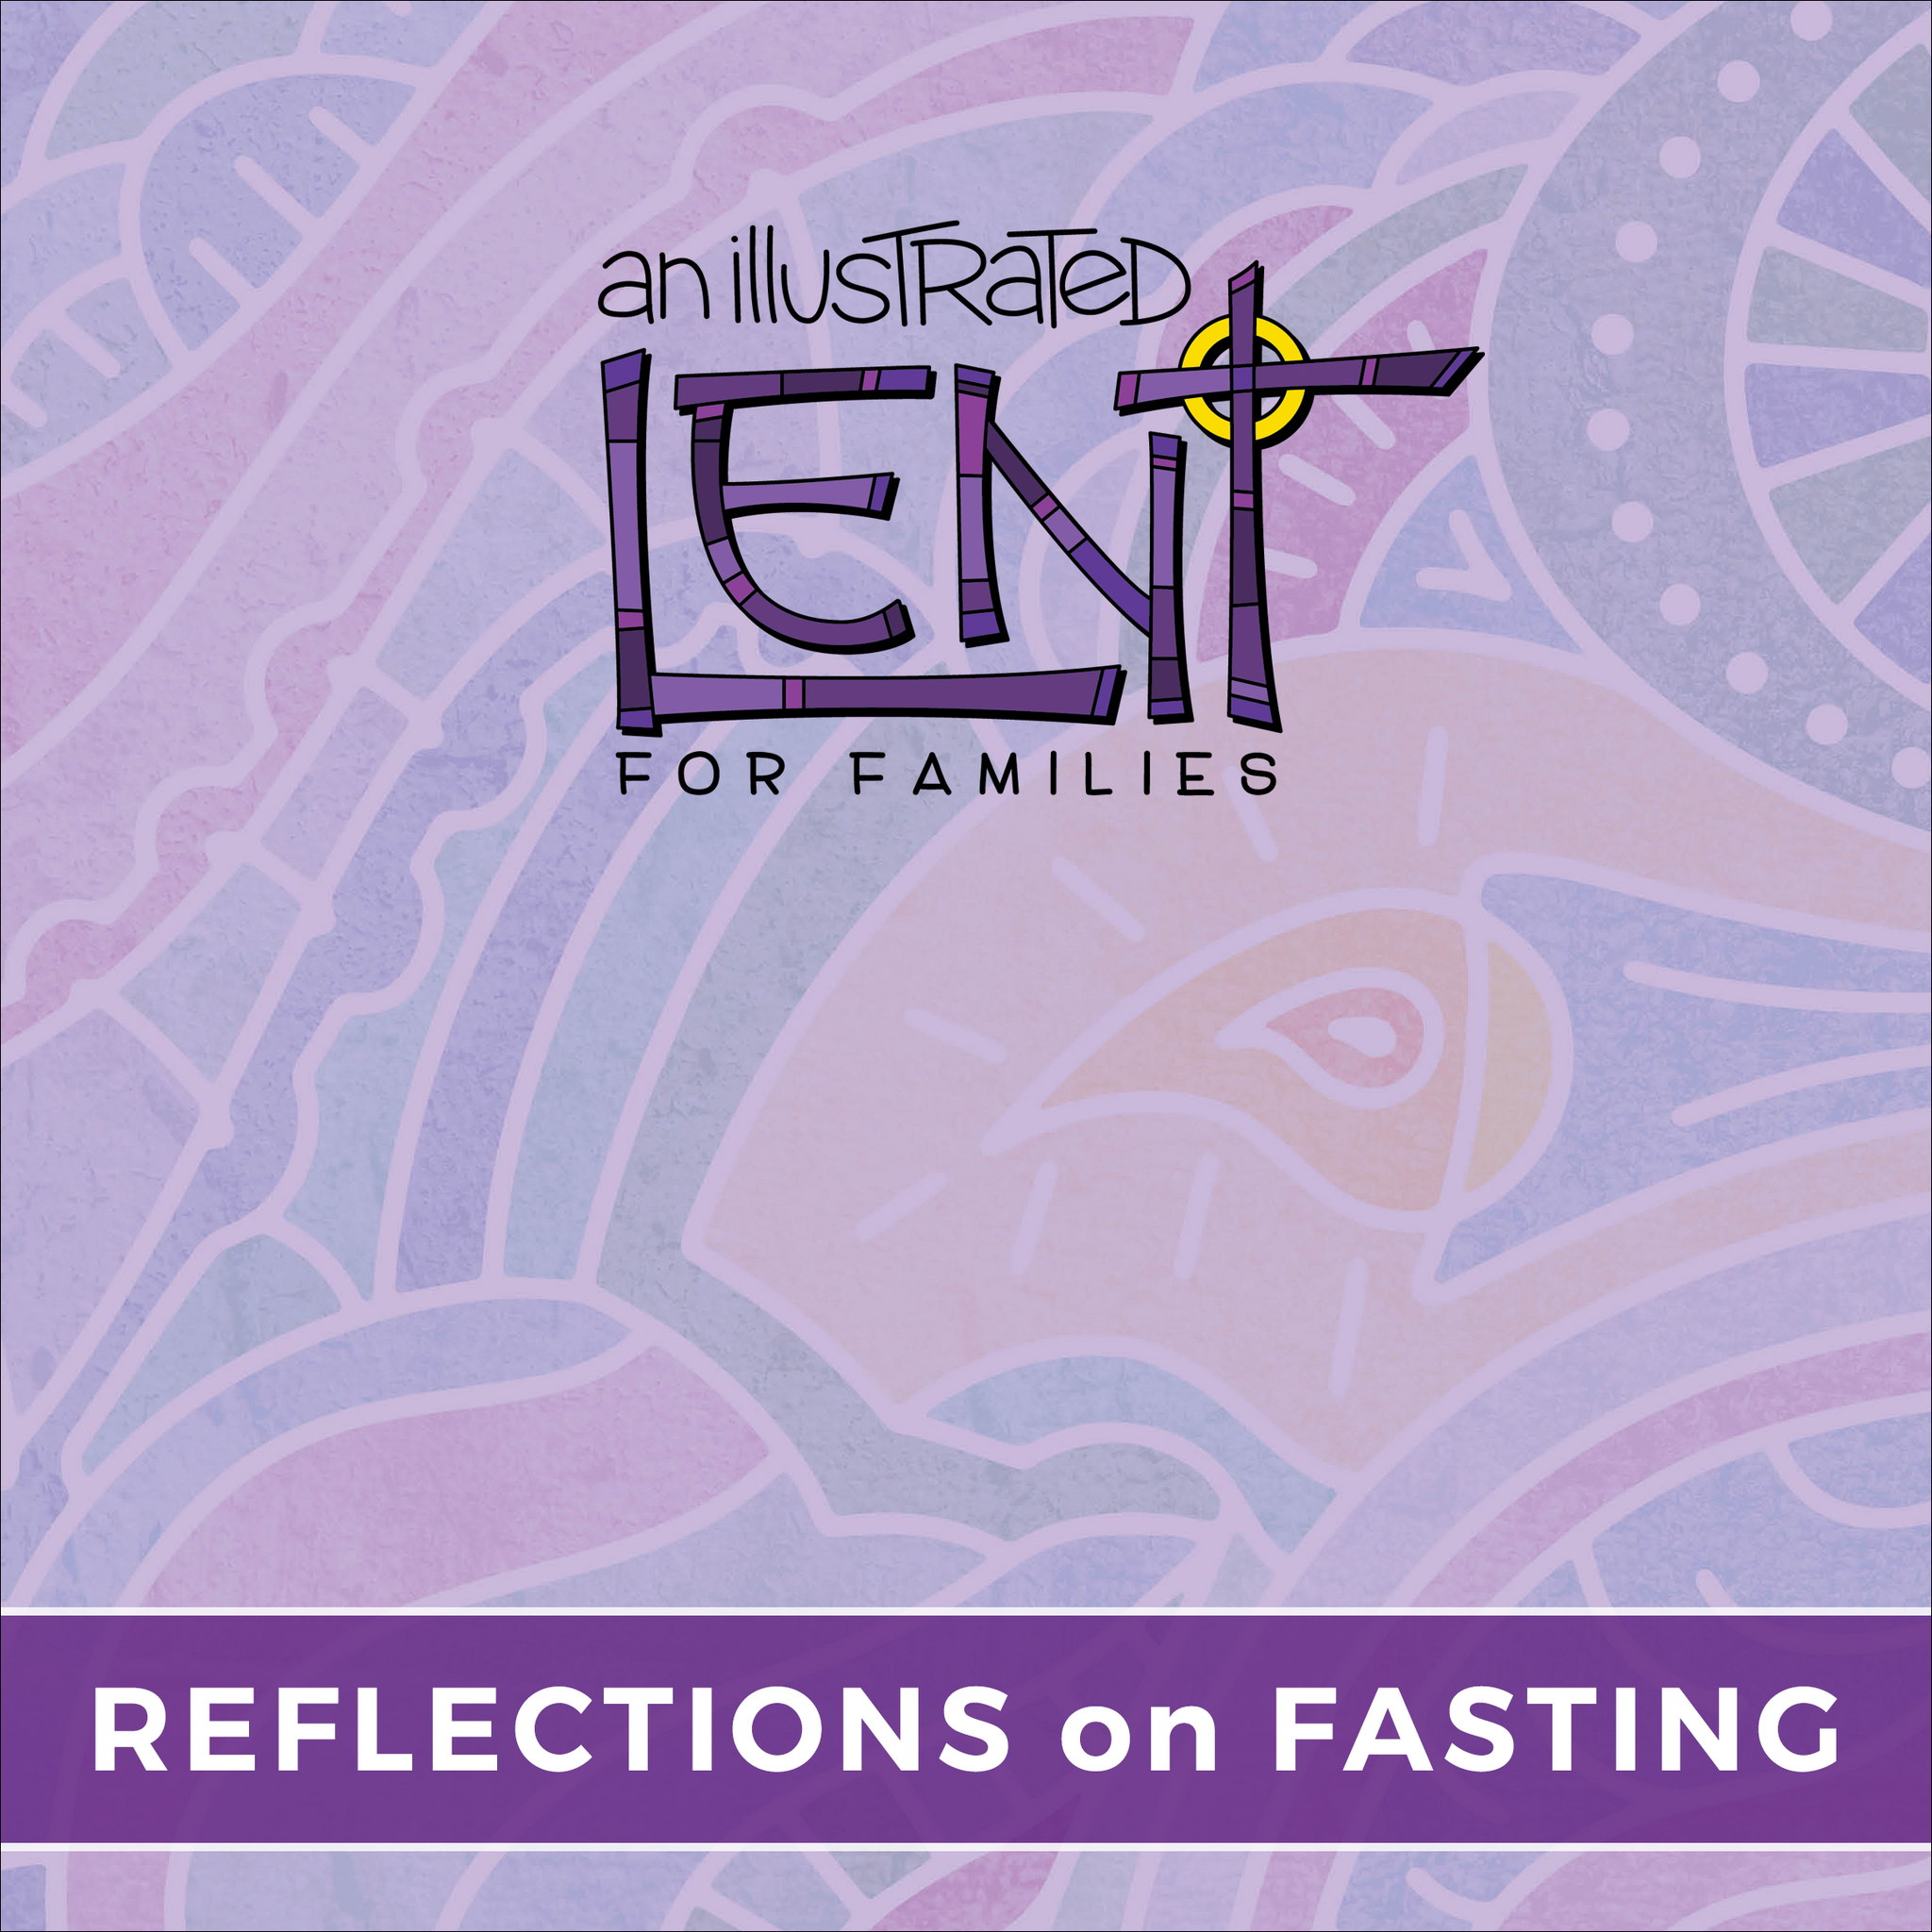 An Illustrated Lent for Families: Reflections on Fasting